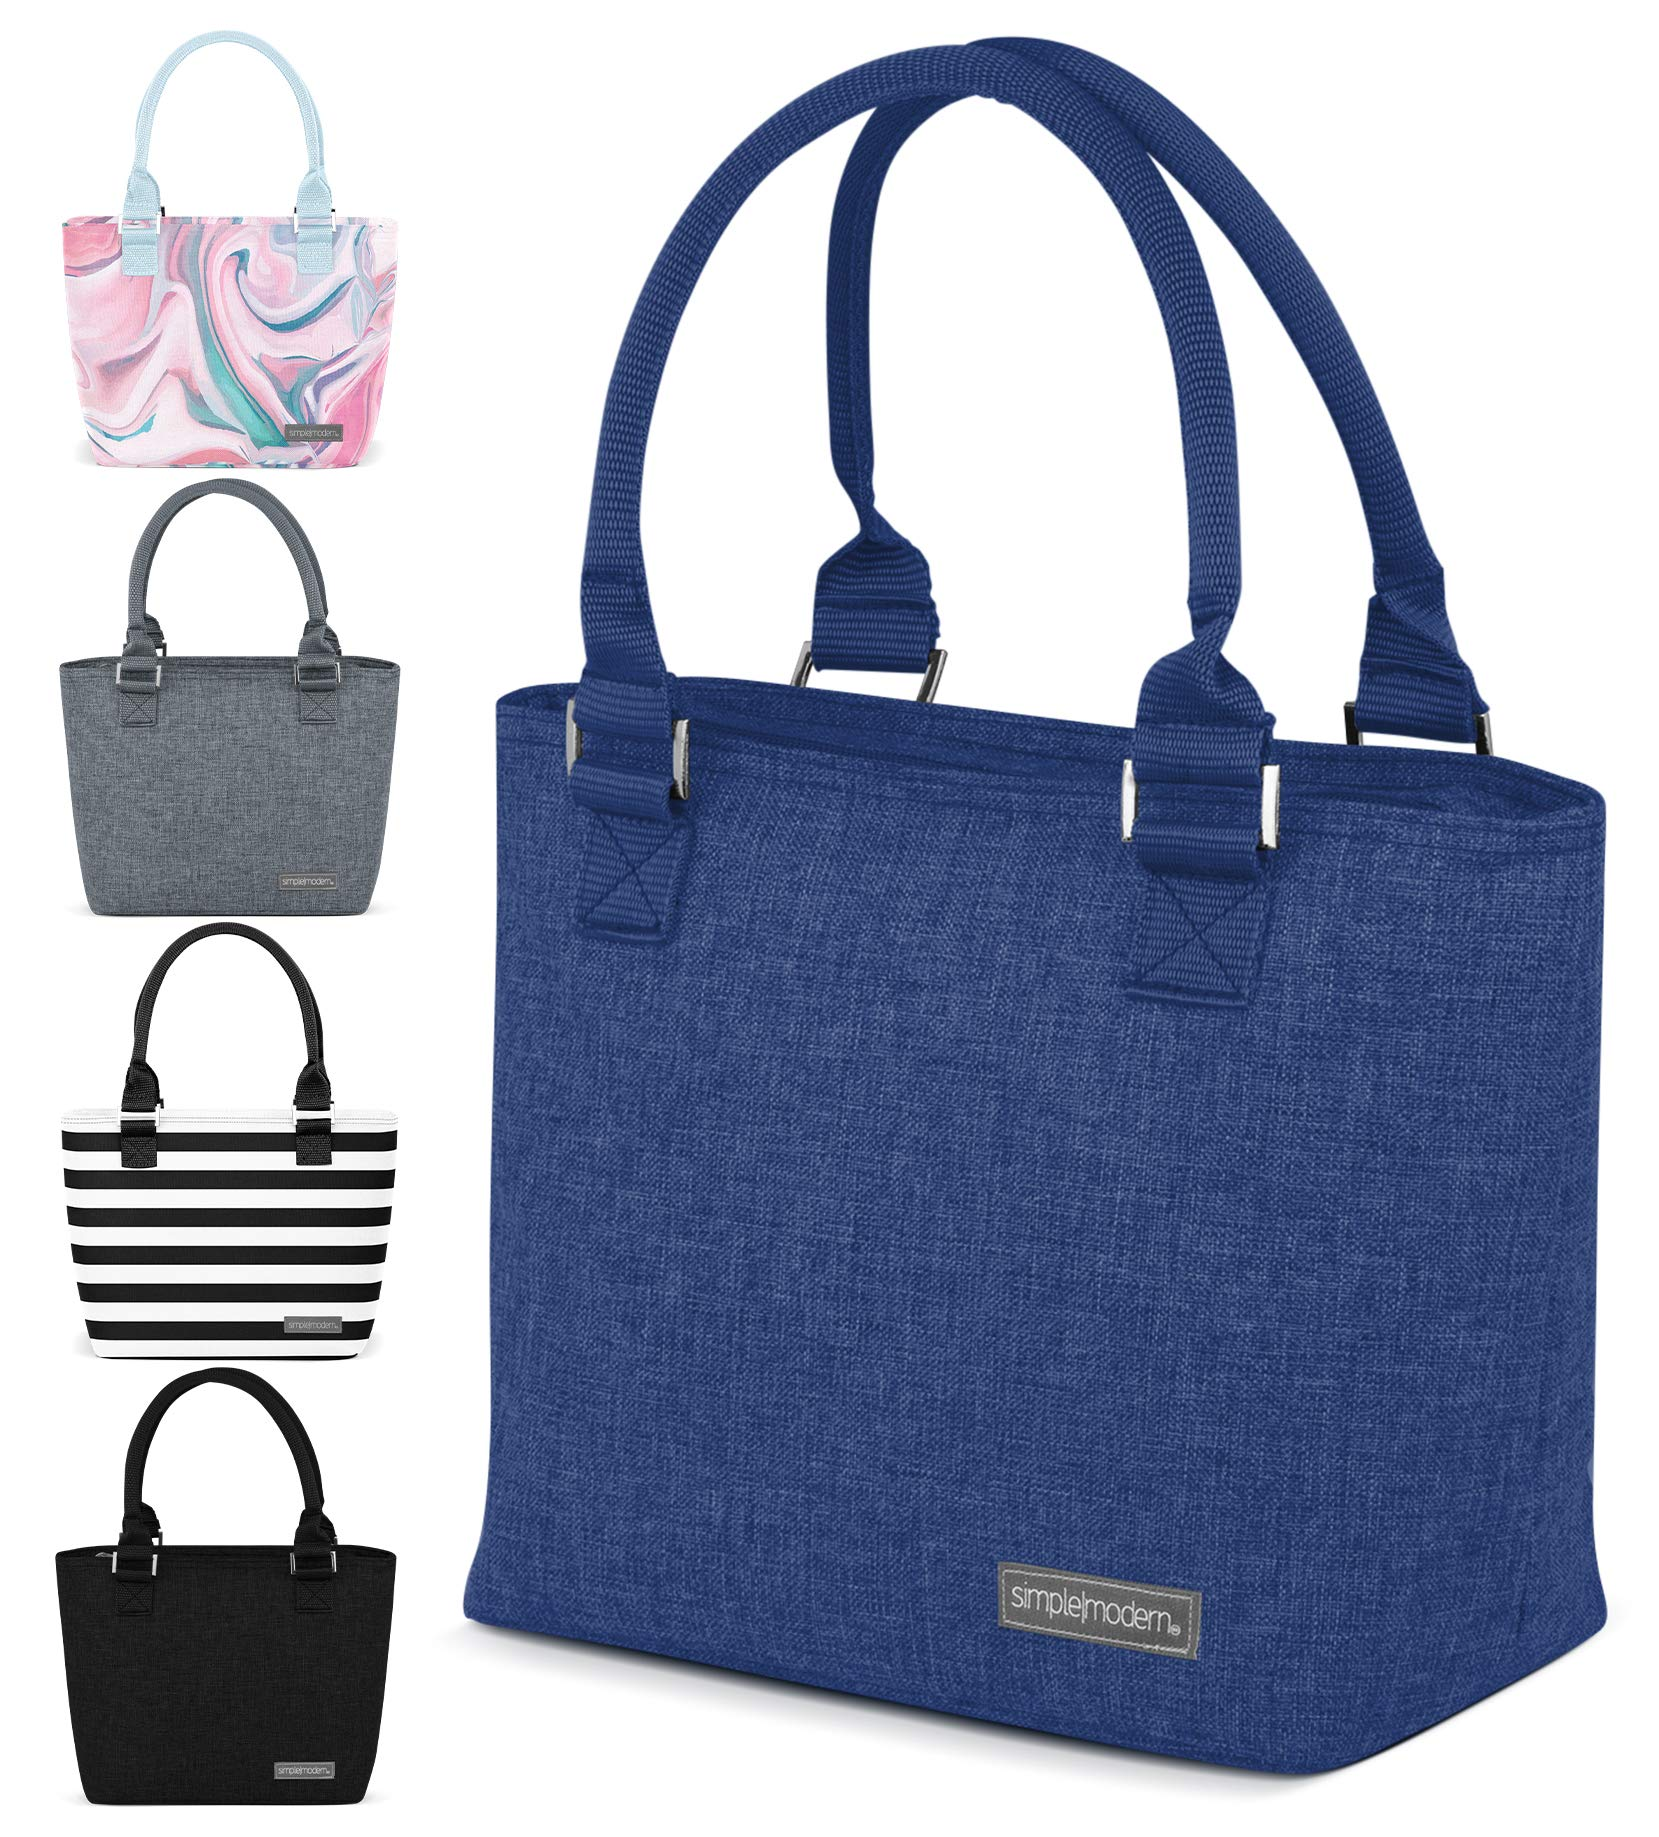 Simple Modern 4L Cara Lena Lunch Bag for Women - Blue Insulated Lunch Box -Twilight